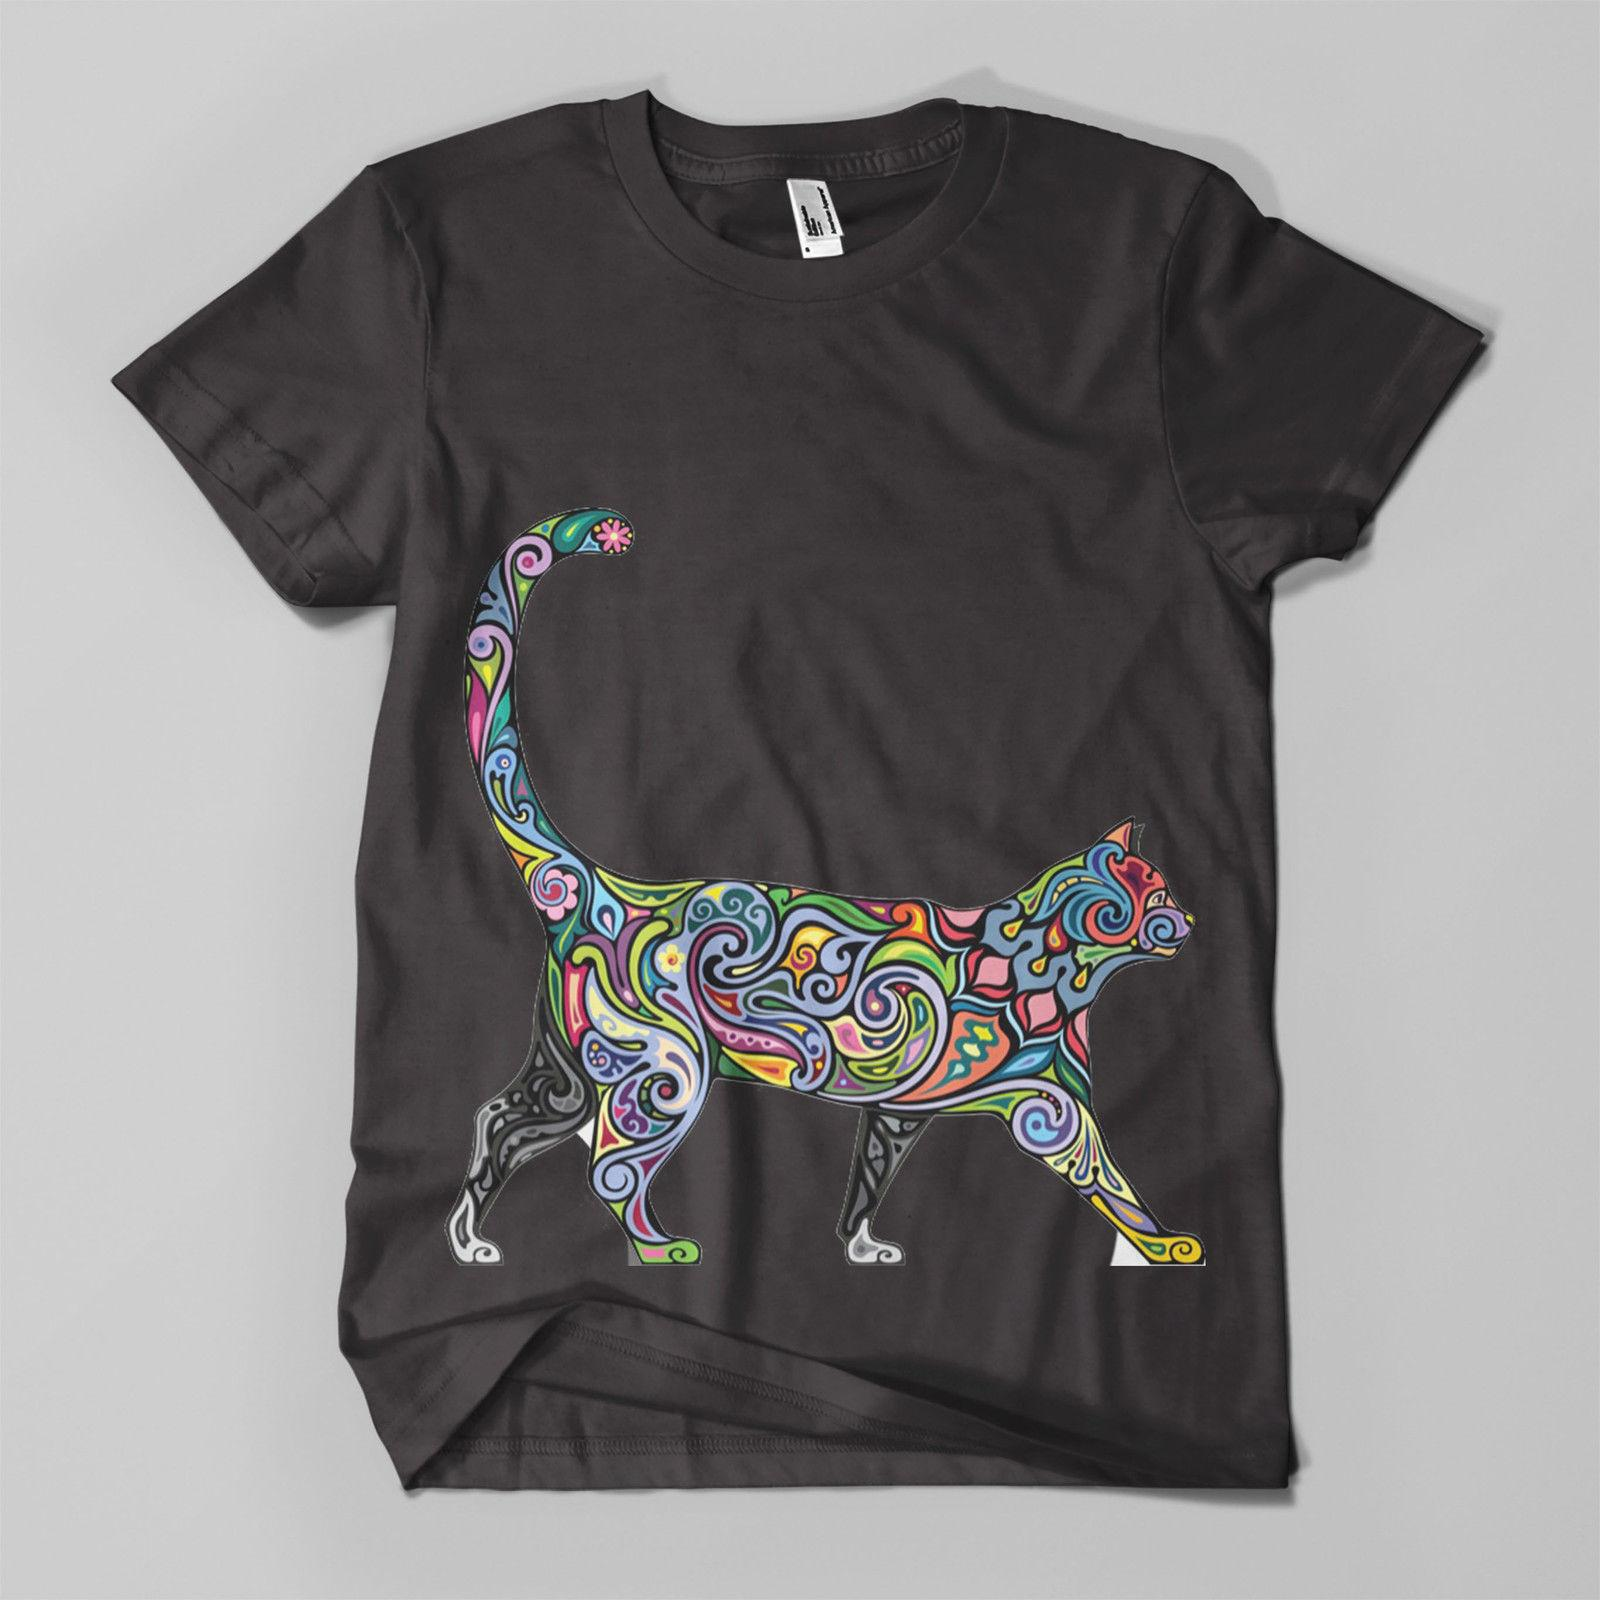 a98447ee9 Floral Cat #1 Printed T Shirt Hipster Design Meow Feline Mens Girls Tee Top  New New T Shirts Funny Tops Tee New T Shirt Shop Design Crazy T Shirts  Online ...